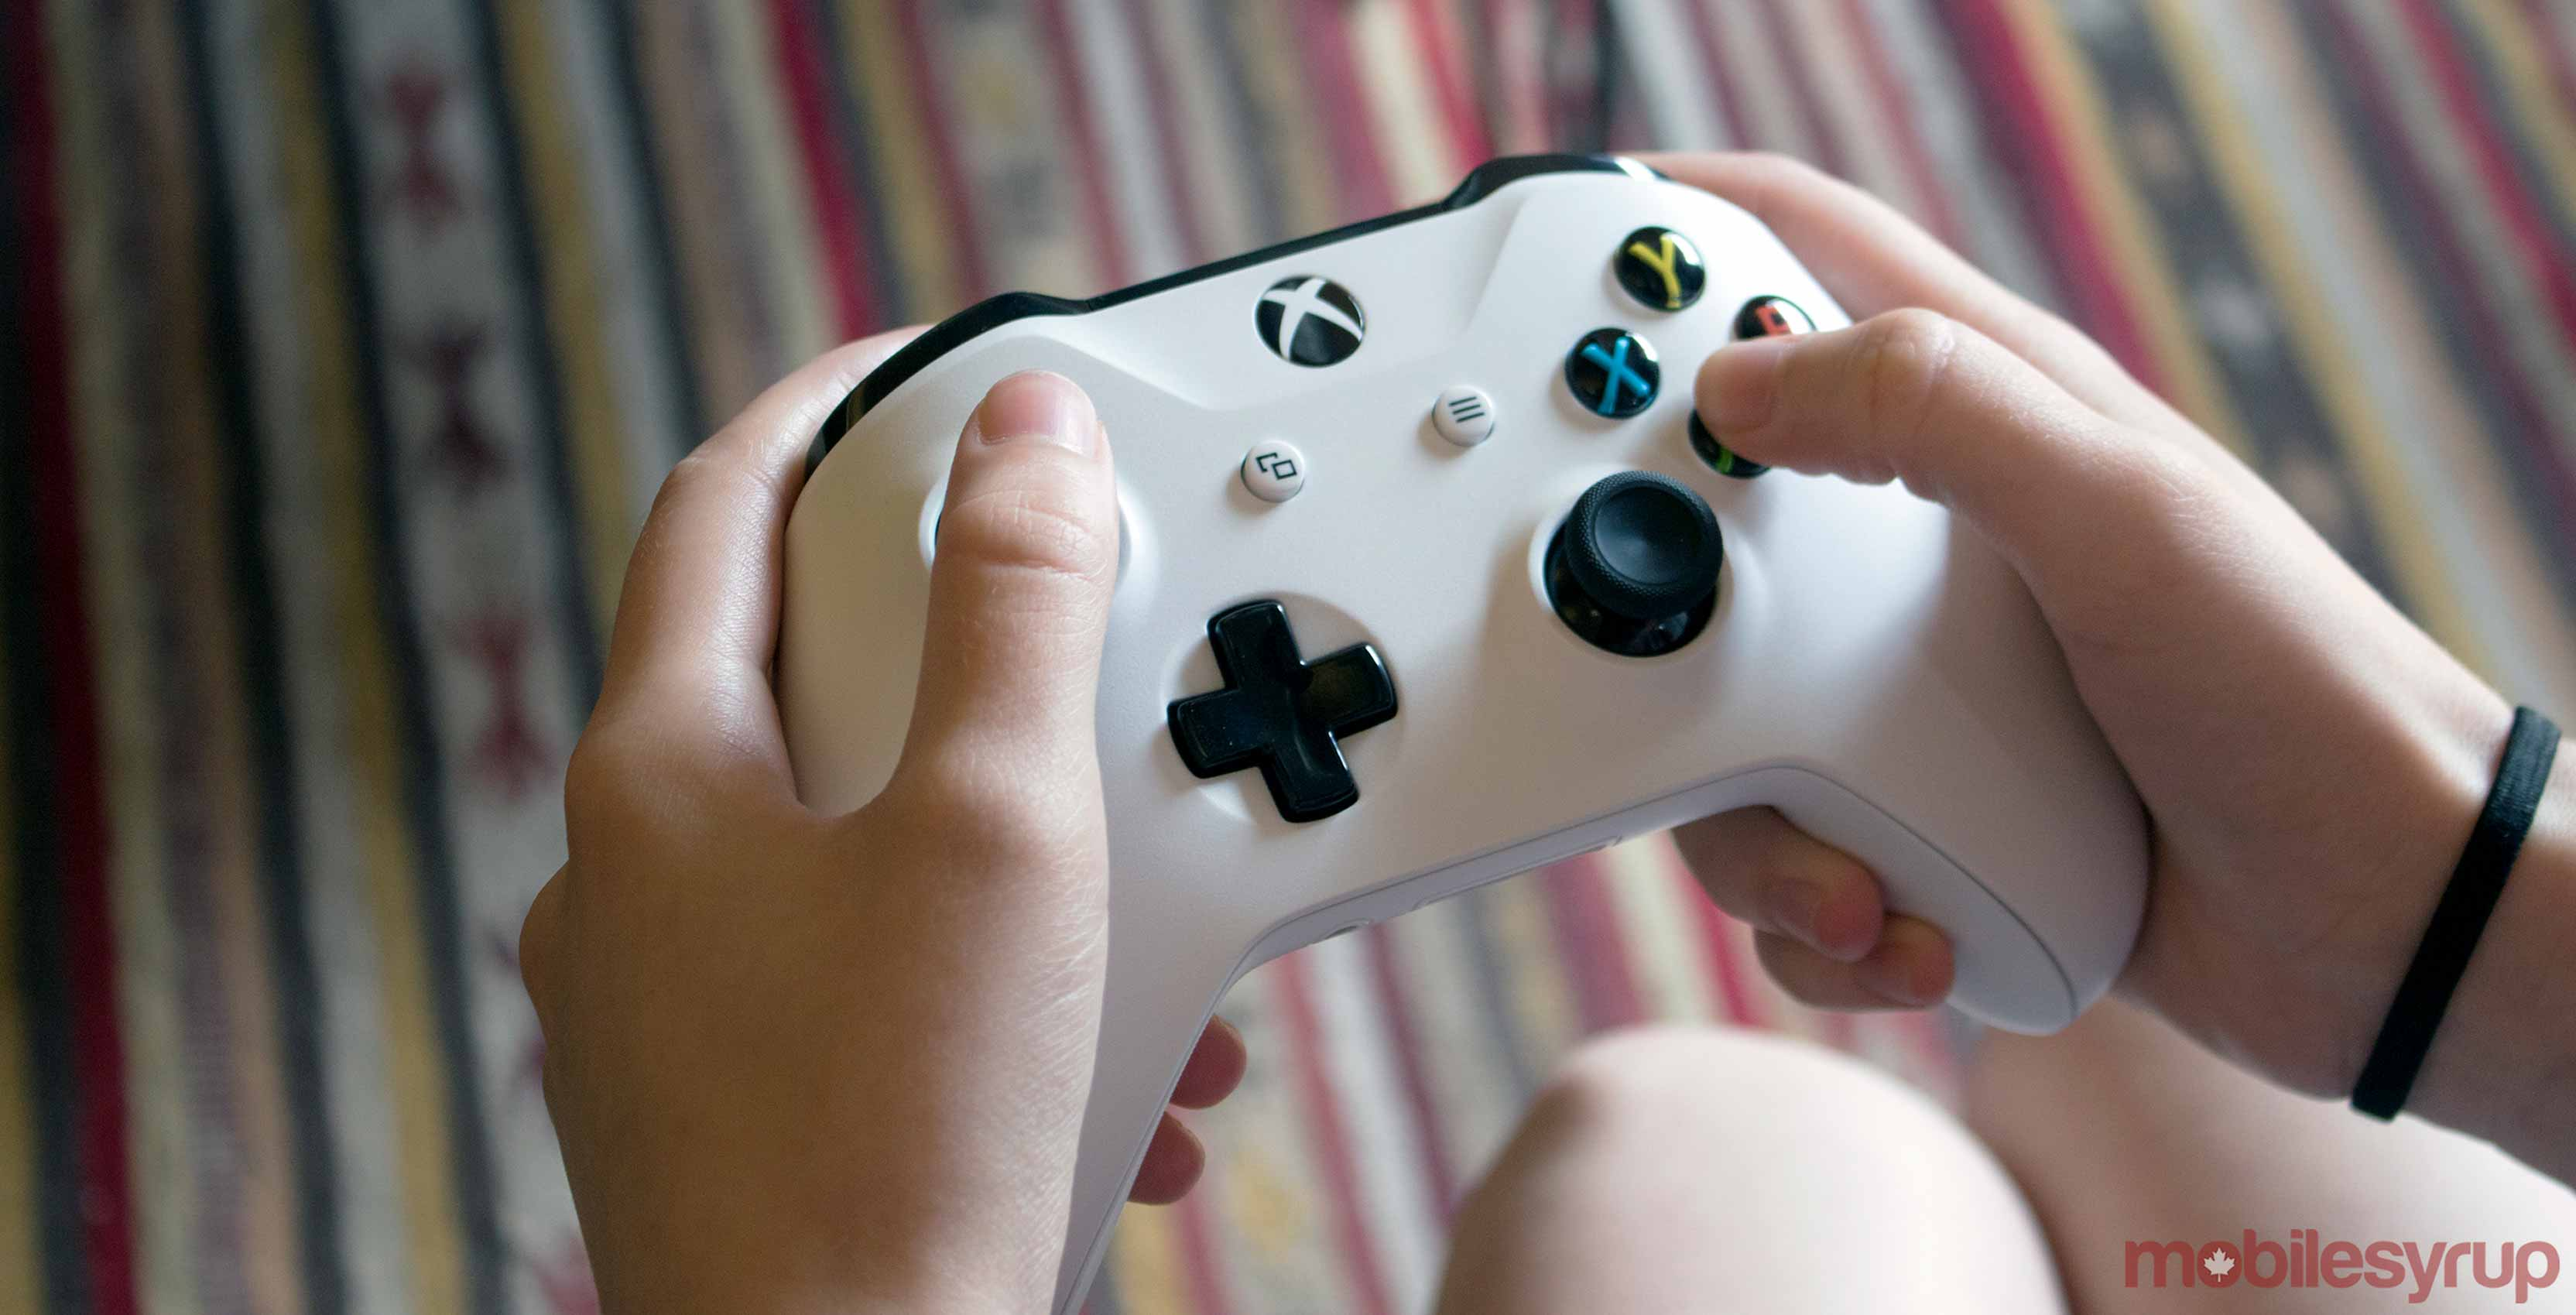 Xbox One white controller in hand